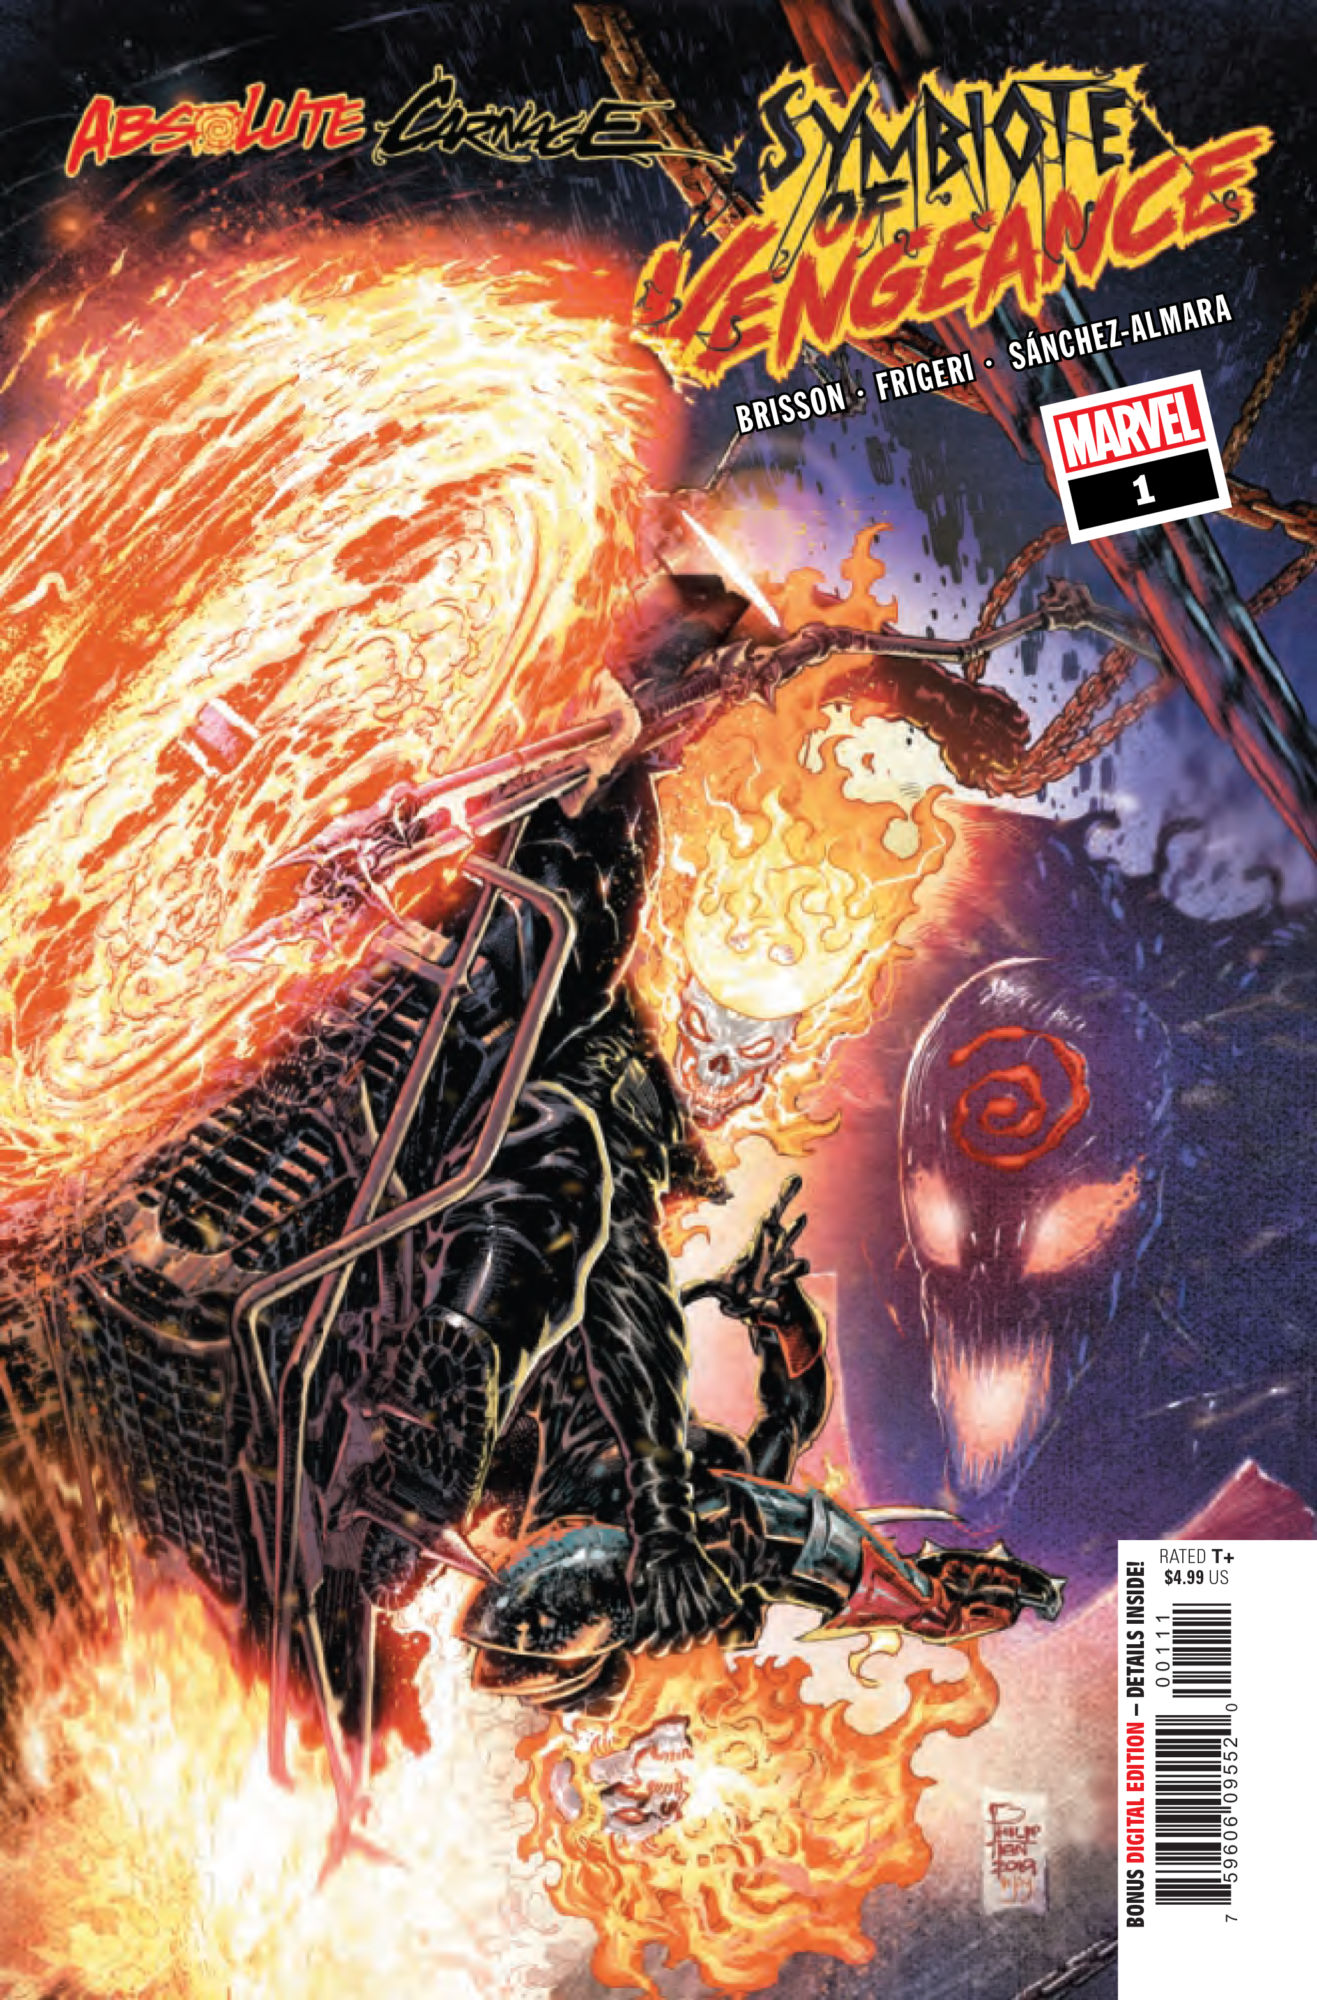 Carnage Wants His Very Own Ghost Rider in Absolute Carnage: Symbiote of Vengeance #1 [Preview]